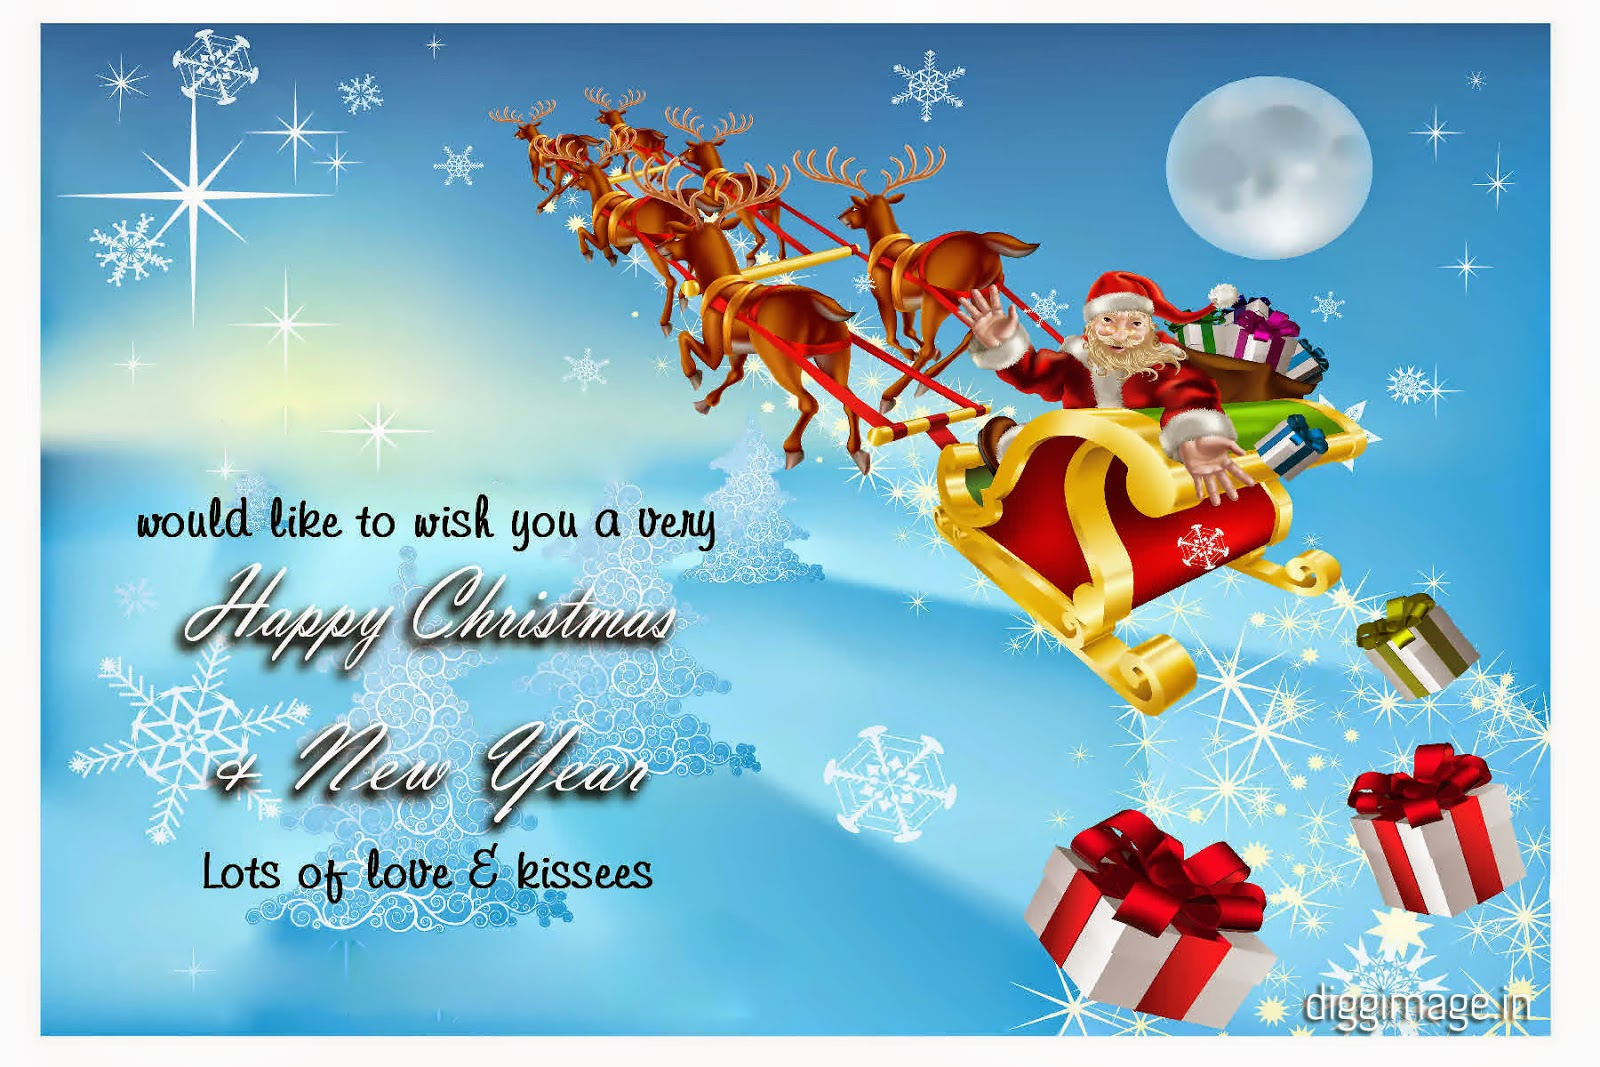 Jingle bells ...Jingle bells.. what fun   it is to wish our  friends a very merry Christmas.